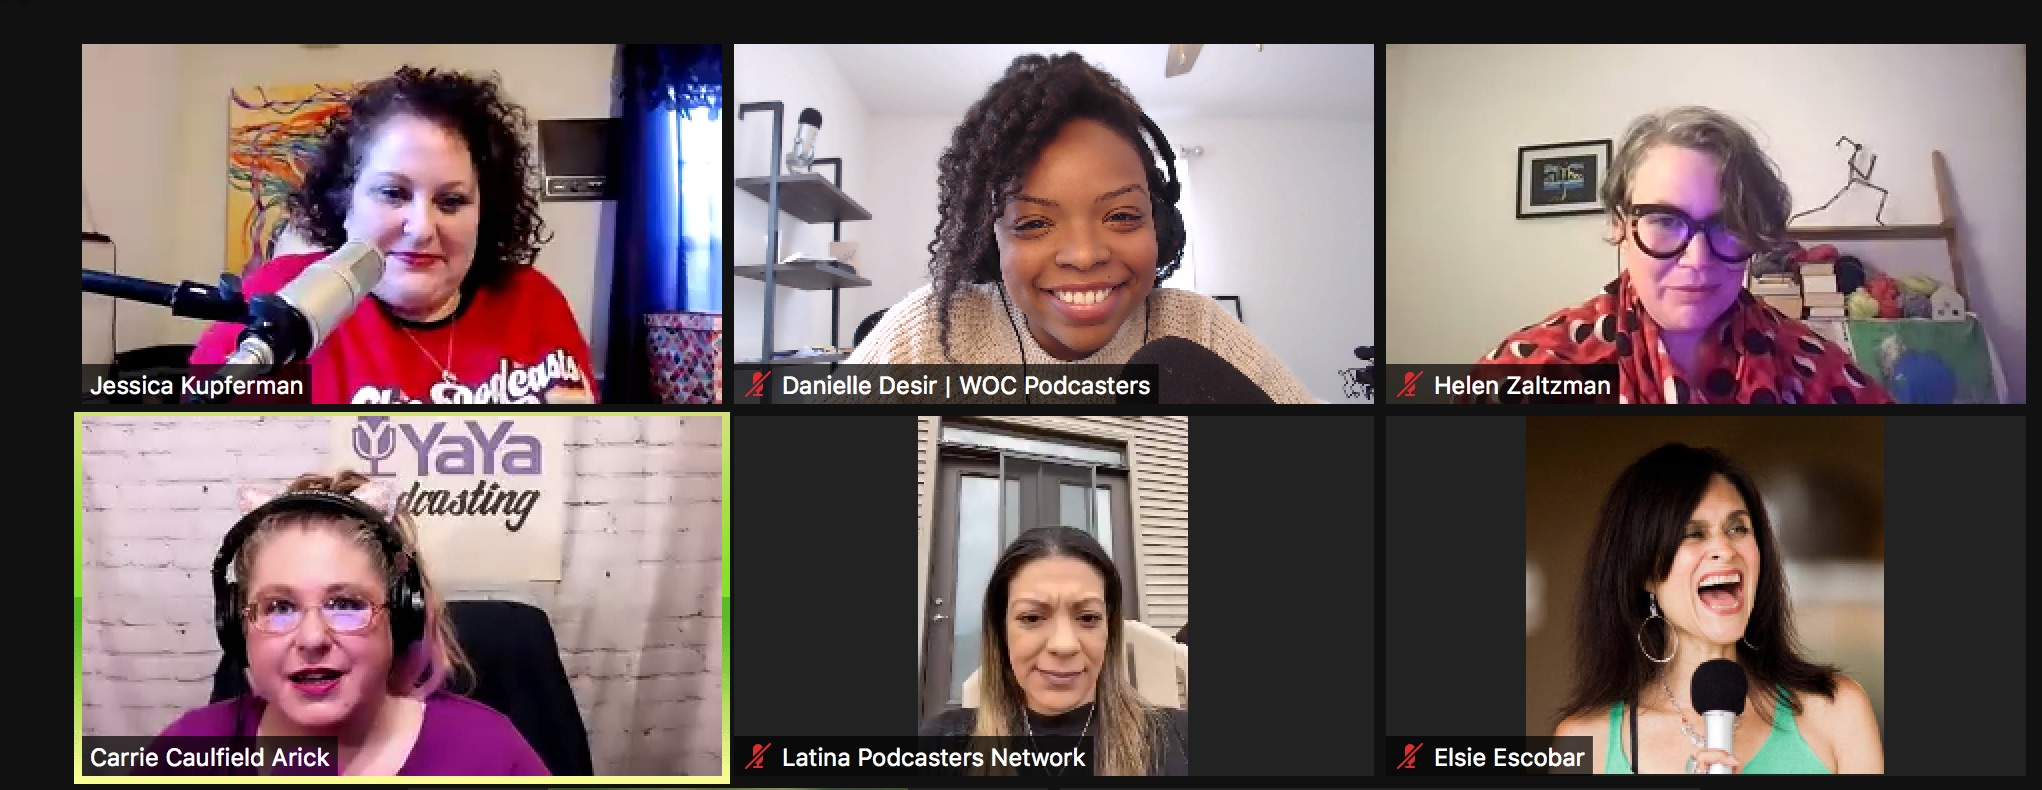 Danielle Desir Podcast Coach, Podcast Consultant, Speaker